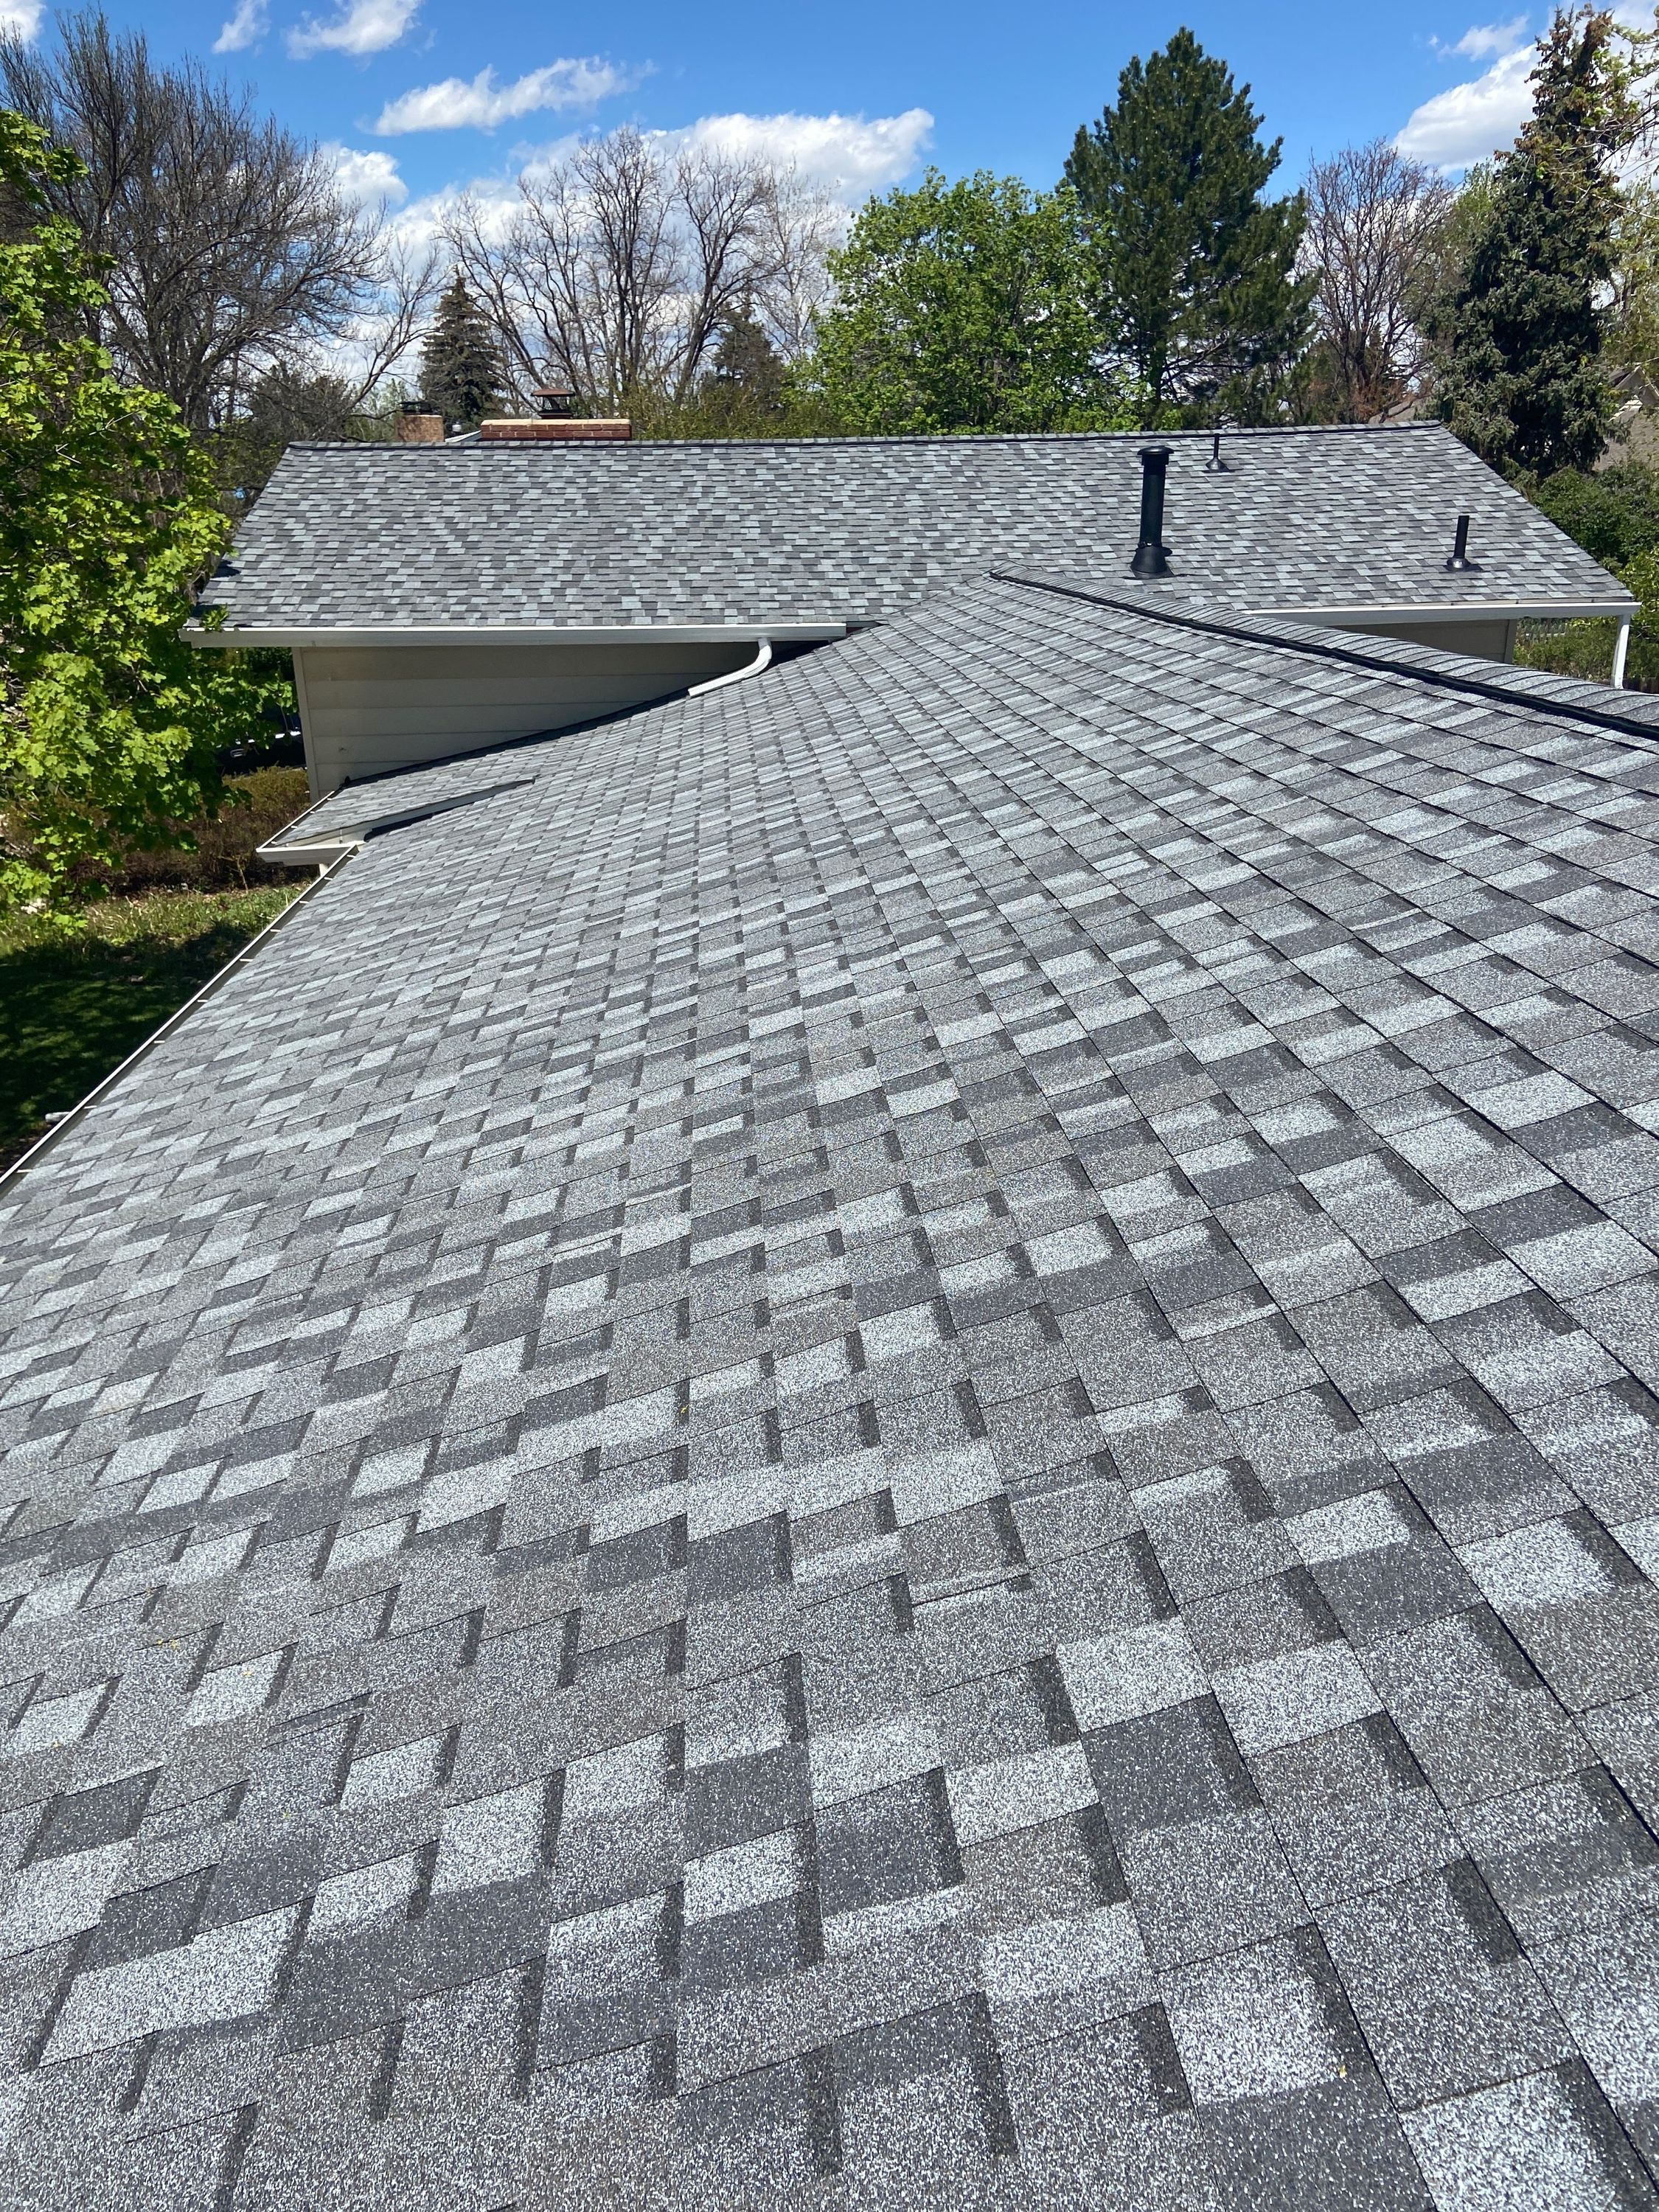 Certainteed Northgate Pewter In 2020 Certainteed Shingling Roofing Contractors